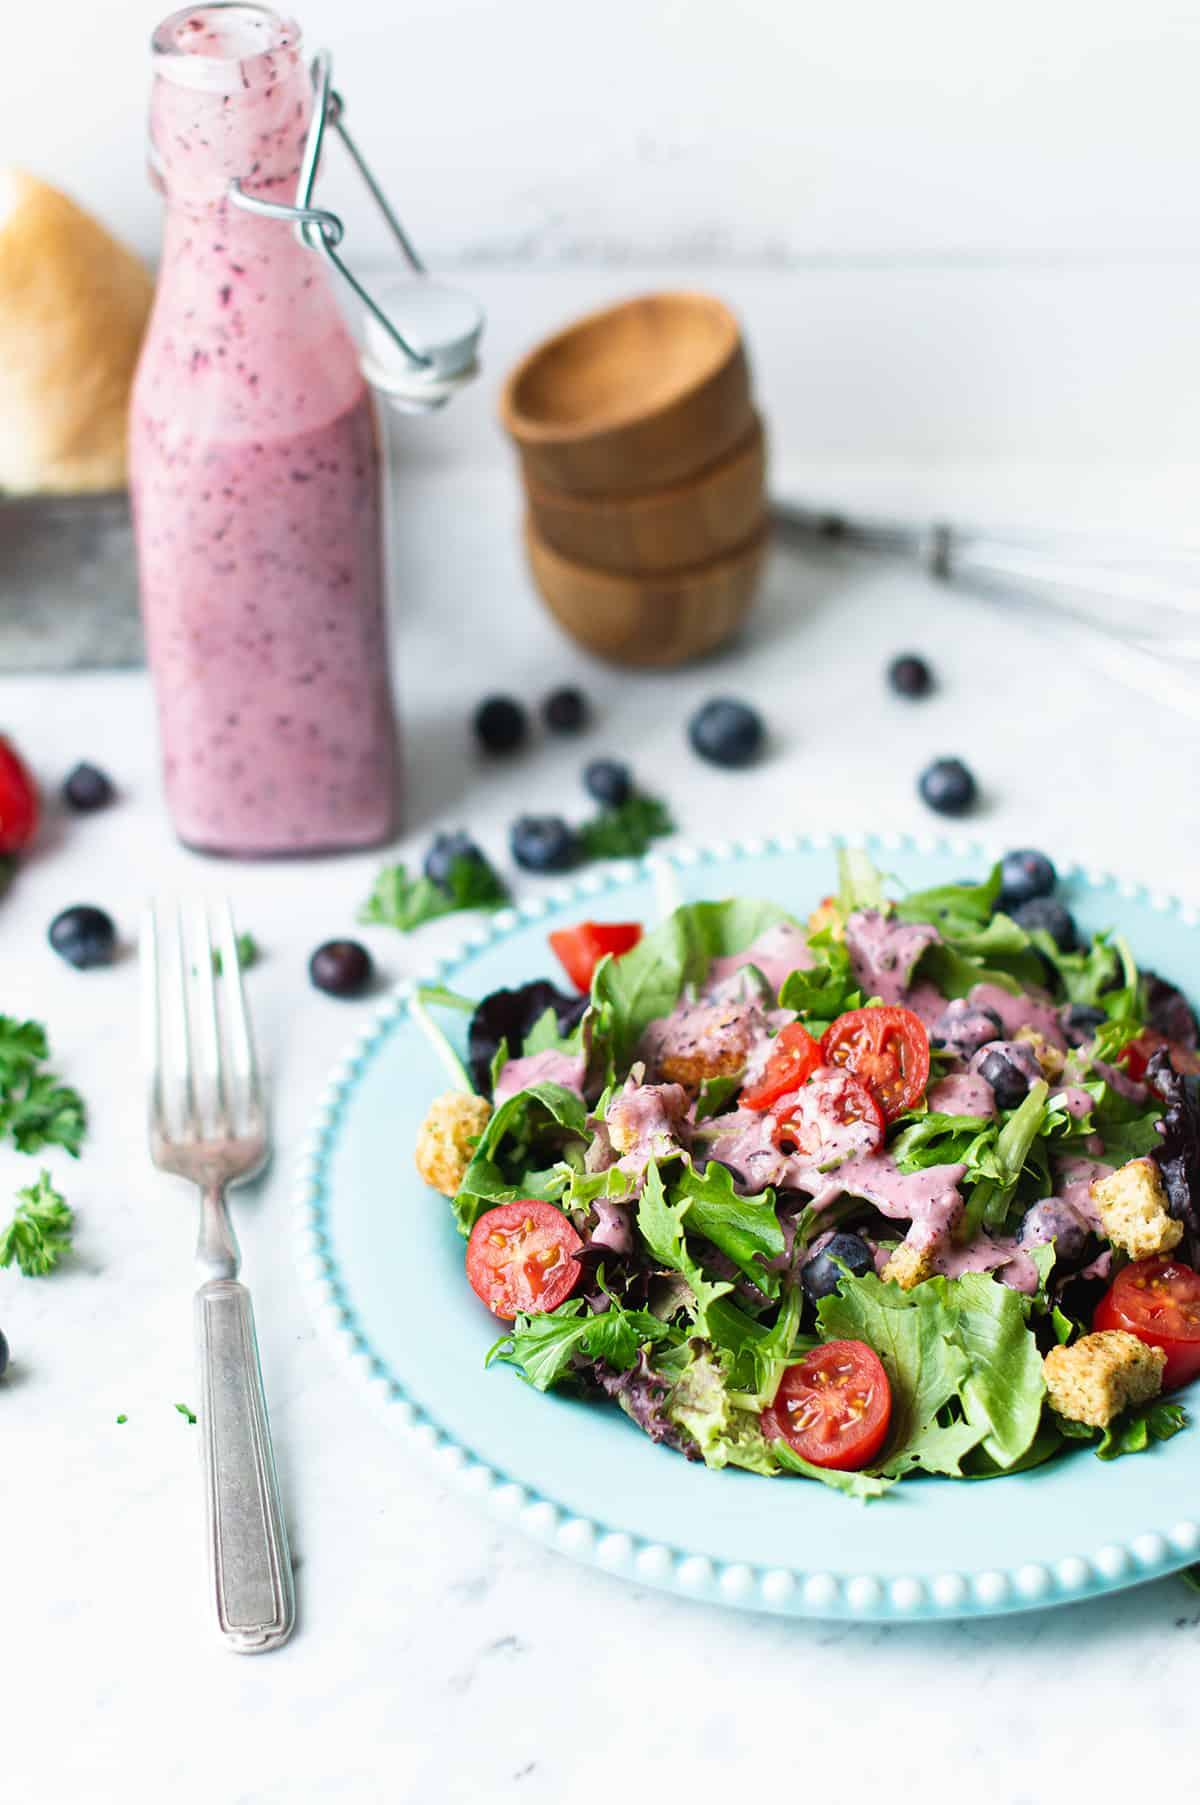 blueberry vinaigrette poured over mixed greens on blue plate with fork